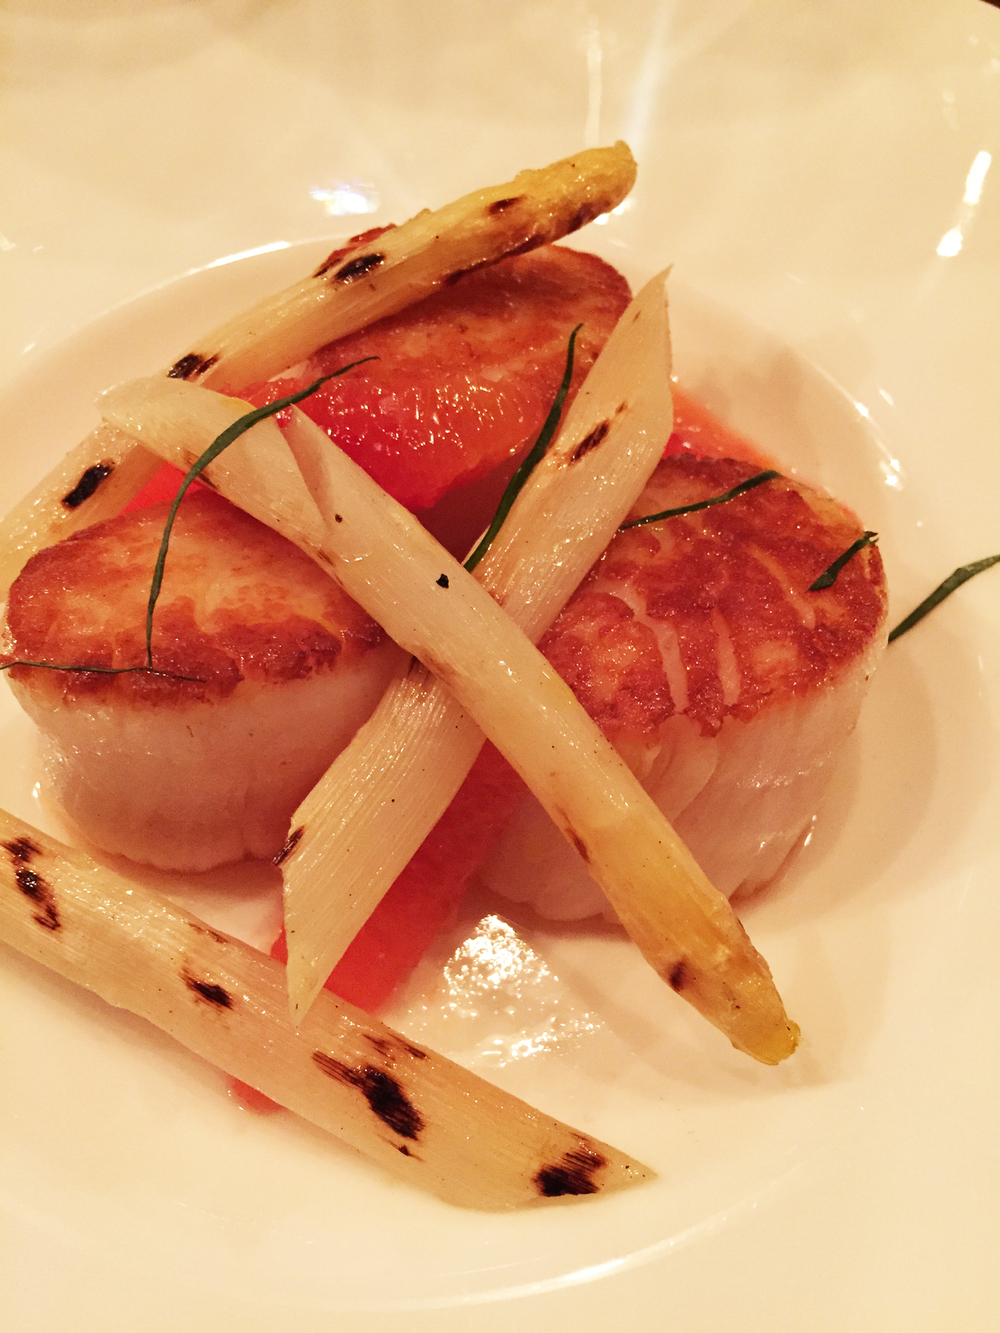 Scallops with blood orange and white asparagus.